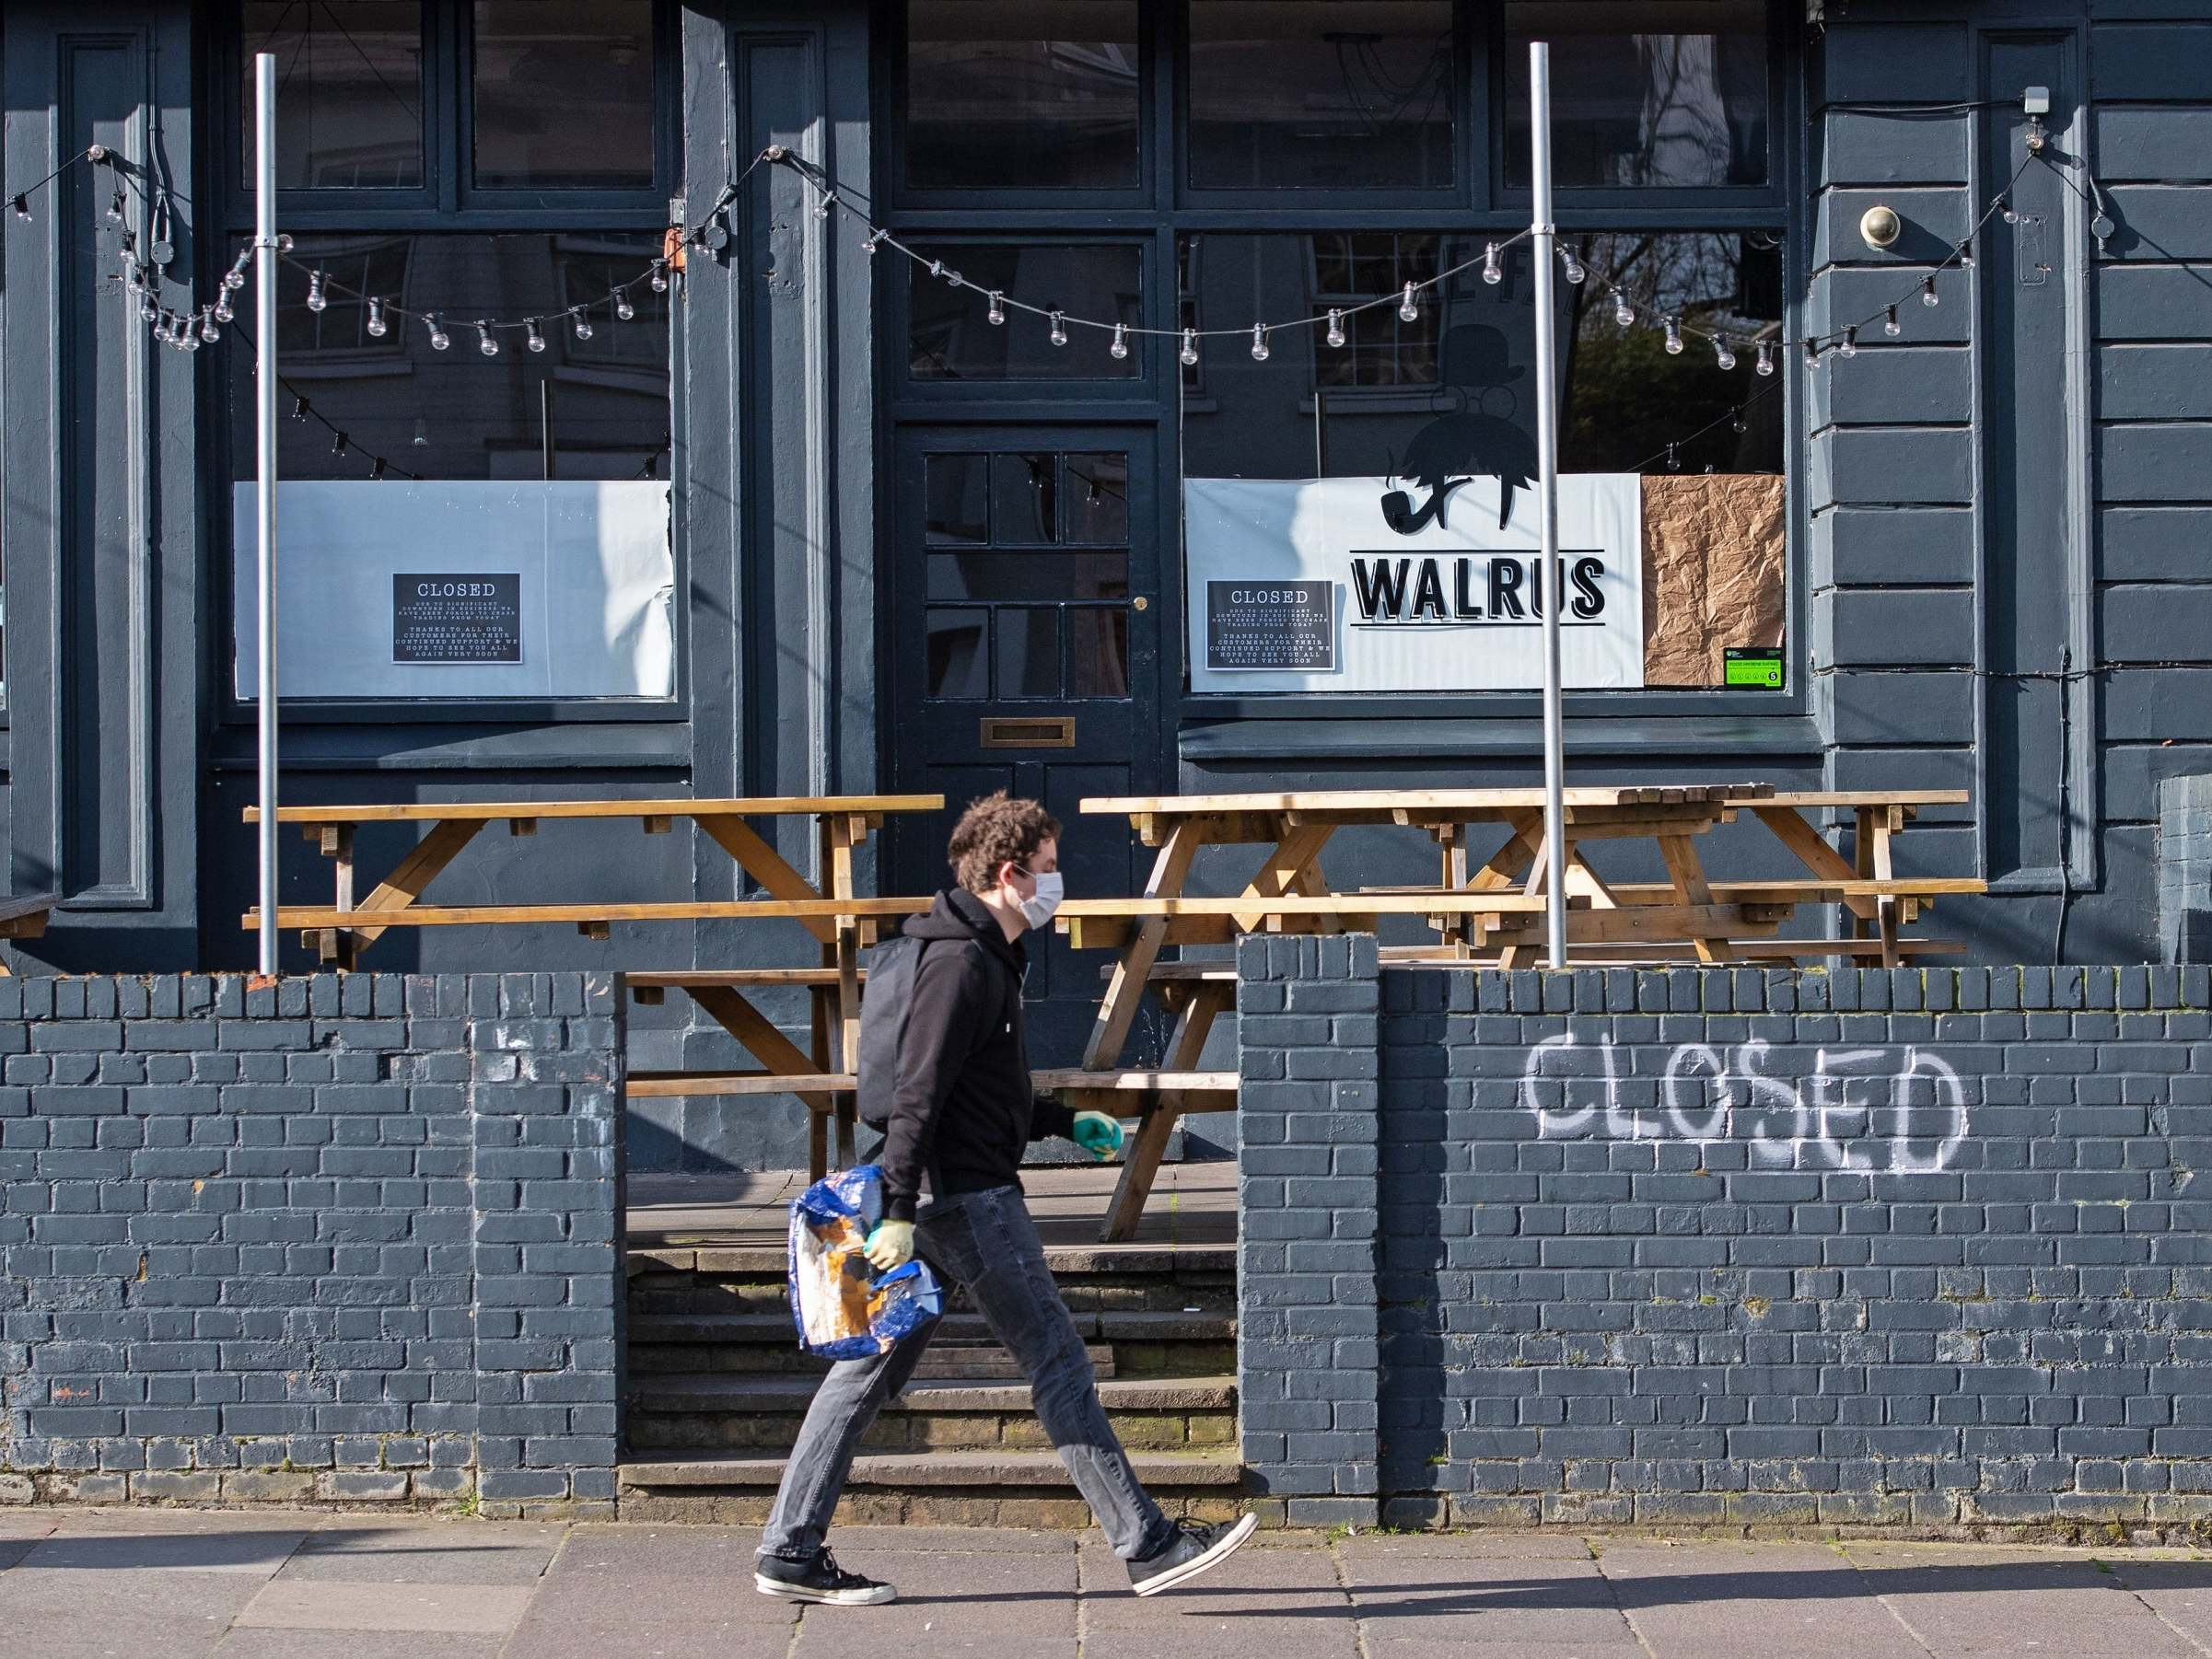 Survival of many UK businesses hangs in the balance, warns CBI